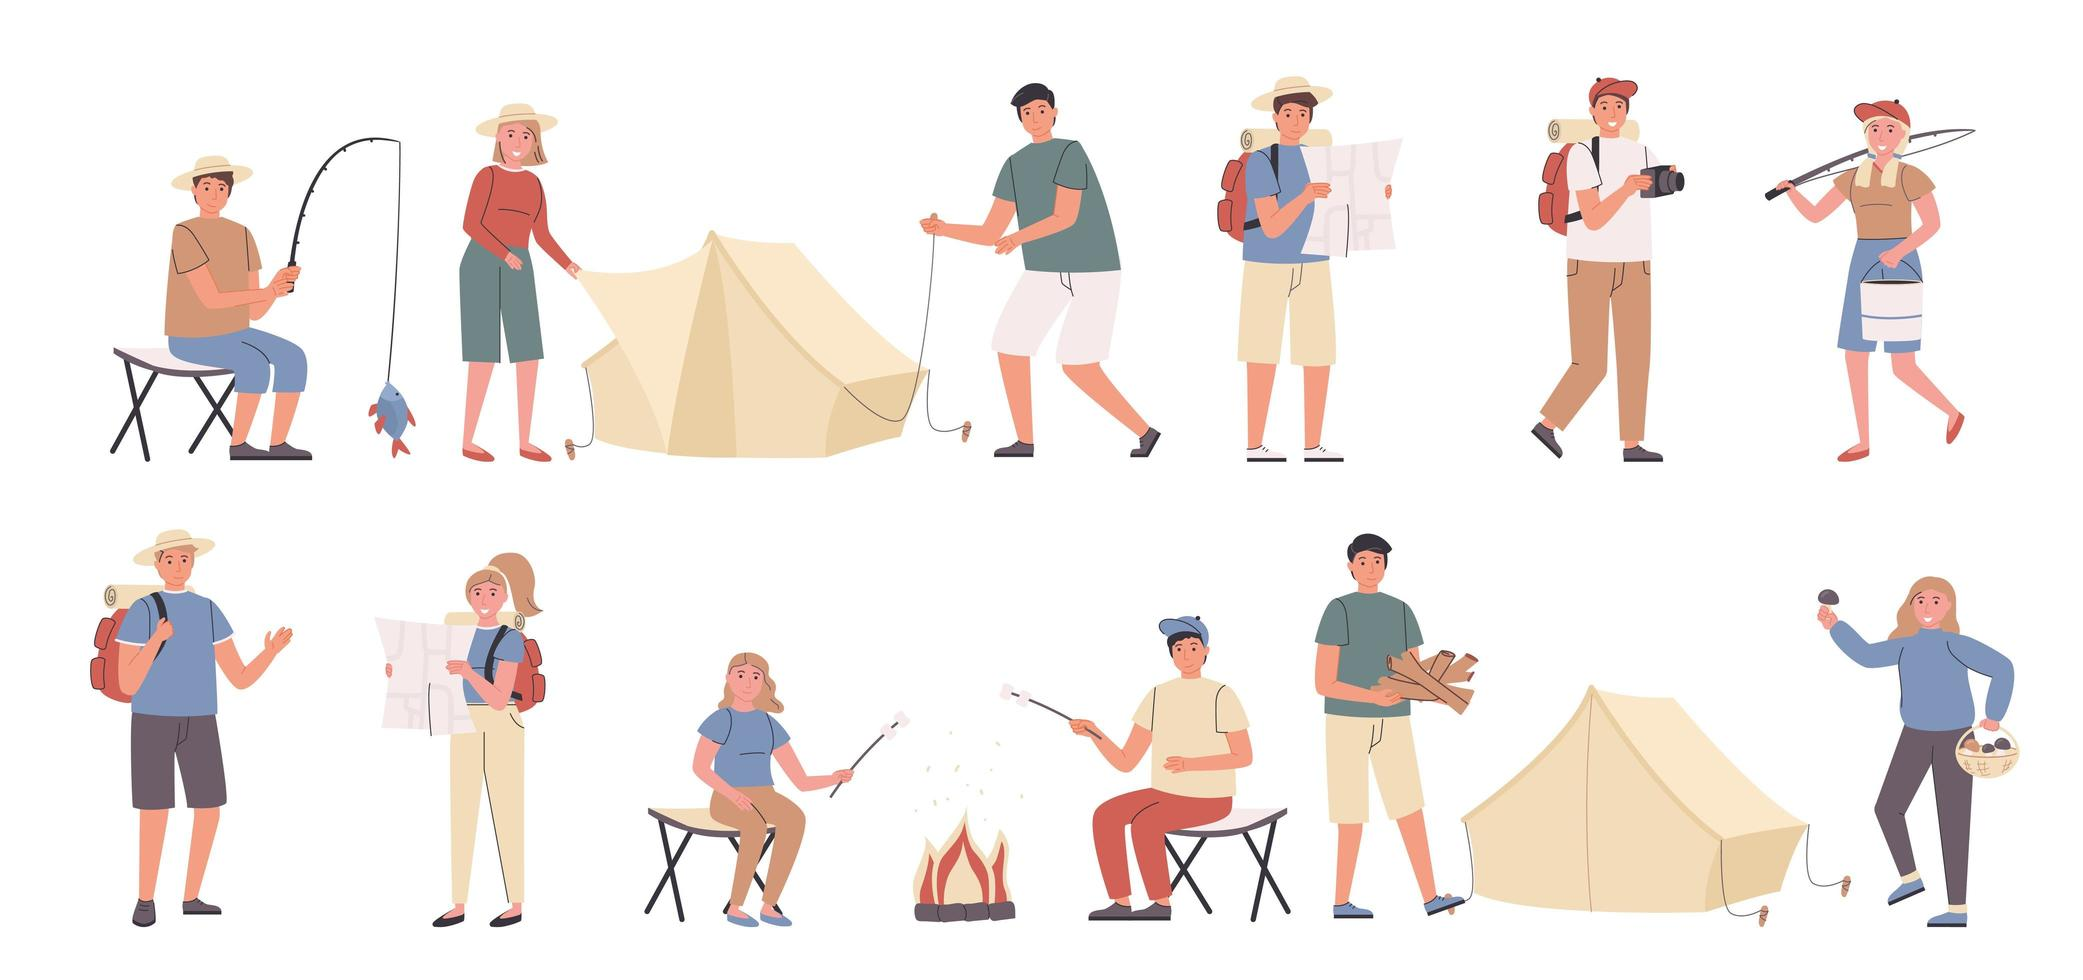 Camping trip, nature leisure, eco friendly flat character set vector